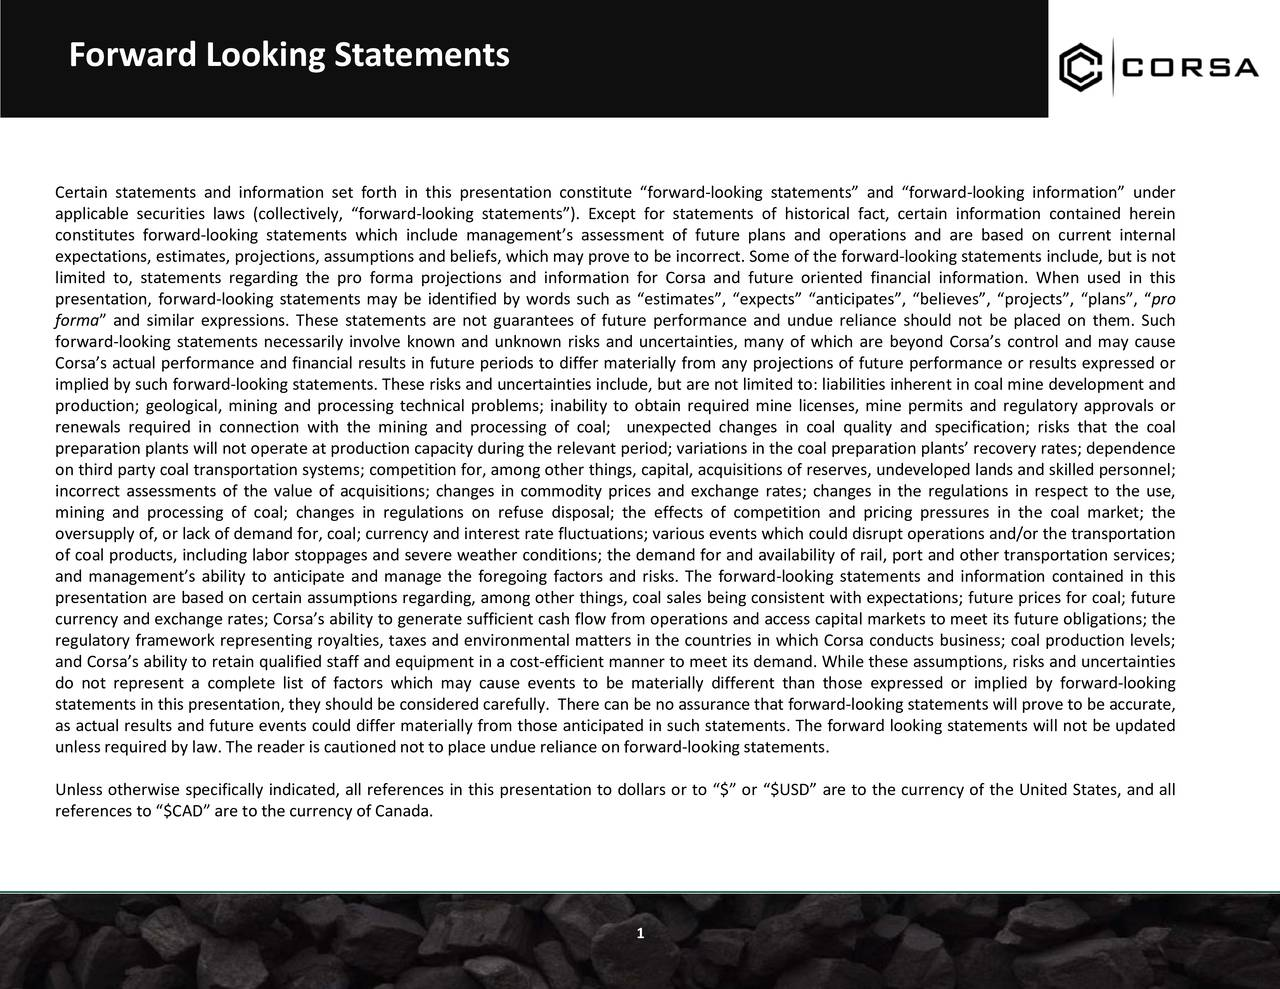 Certain statements and information set forth in this presentation constitute forward-looking statements and forward-looking information under applicable securities laws (collectively, forward-looking statements). Except for statements of historical fact, certain information contained herein constitutes forward-looking statements which include managements assessment of future plans and operations and are based on current internal expectations, estimates, projections, assumptions and beliefs, which may prove to be incorrect. Some of the forward-looking statements include, but is not limited to, statements regarding the pro forma projections and information for Corsa and future oriented financial information. When used in this presentation, forward-looking statements may be identified by words such as estimates, expects anticipates, believes, projects, plans, pro forma and similar expressions. These statements are not guarantees of future performance and undue reliance should not be placed on them. Such forward-looking statements necessarily involve known and unknown risks and uncertainties, many of which are beyond Corsas control and may cause Corsas actual performance and financial results in future periods to differ materially from any projections of future performance or results expressed or implied by such forward-looking statements. These risks and uncertainties include, but are not limited to: liabilities inherent in coal mine development and production; geological, mining and processing technical problems; inability to obtain required mine licenses, mine permits and regulatory approvals or renewals required in connection with the mining and processing of coal; unexpected changes in coal quality and specification; risks that the coal preparation plants will not operate at production capacity during the relevant period; variations in the coal preparation plants recovery rates; dependence on third party coal transportation systems; competition for, among other thi